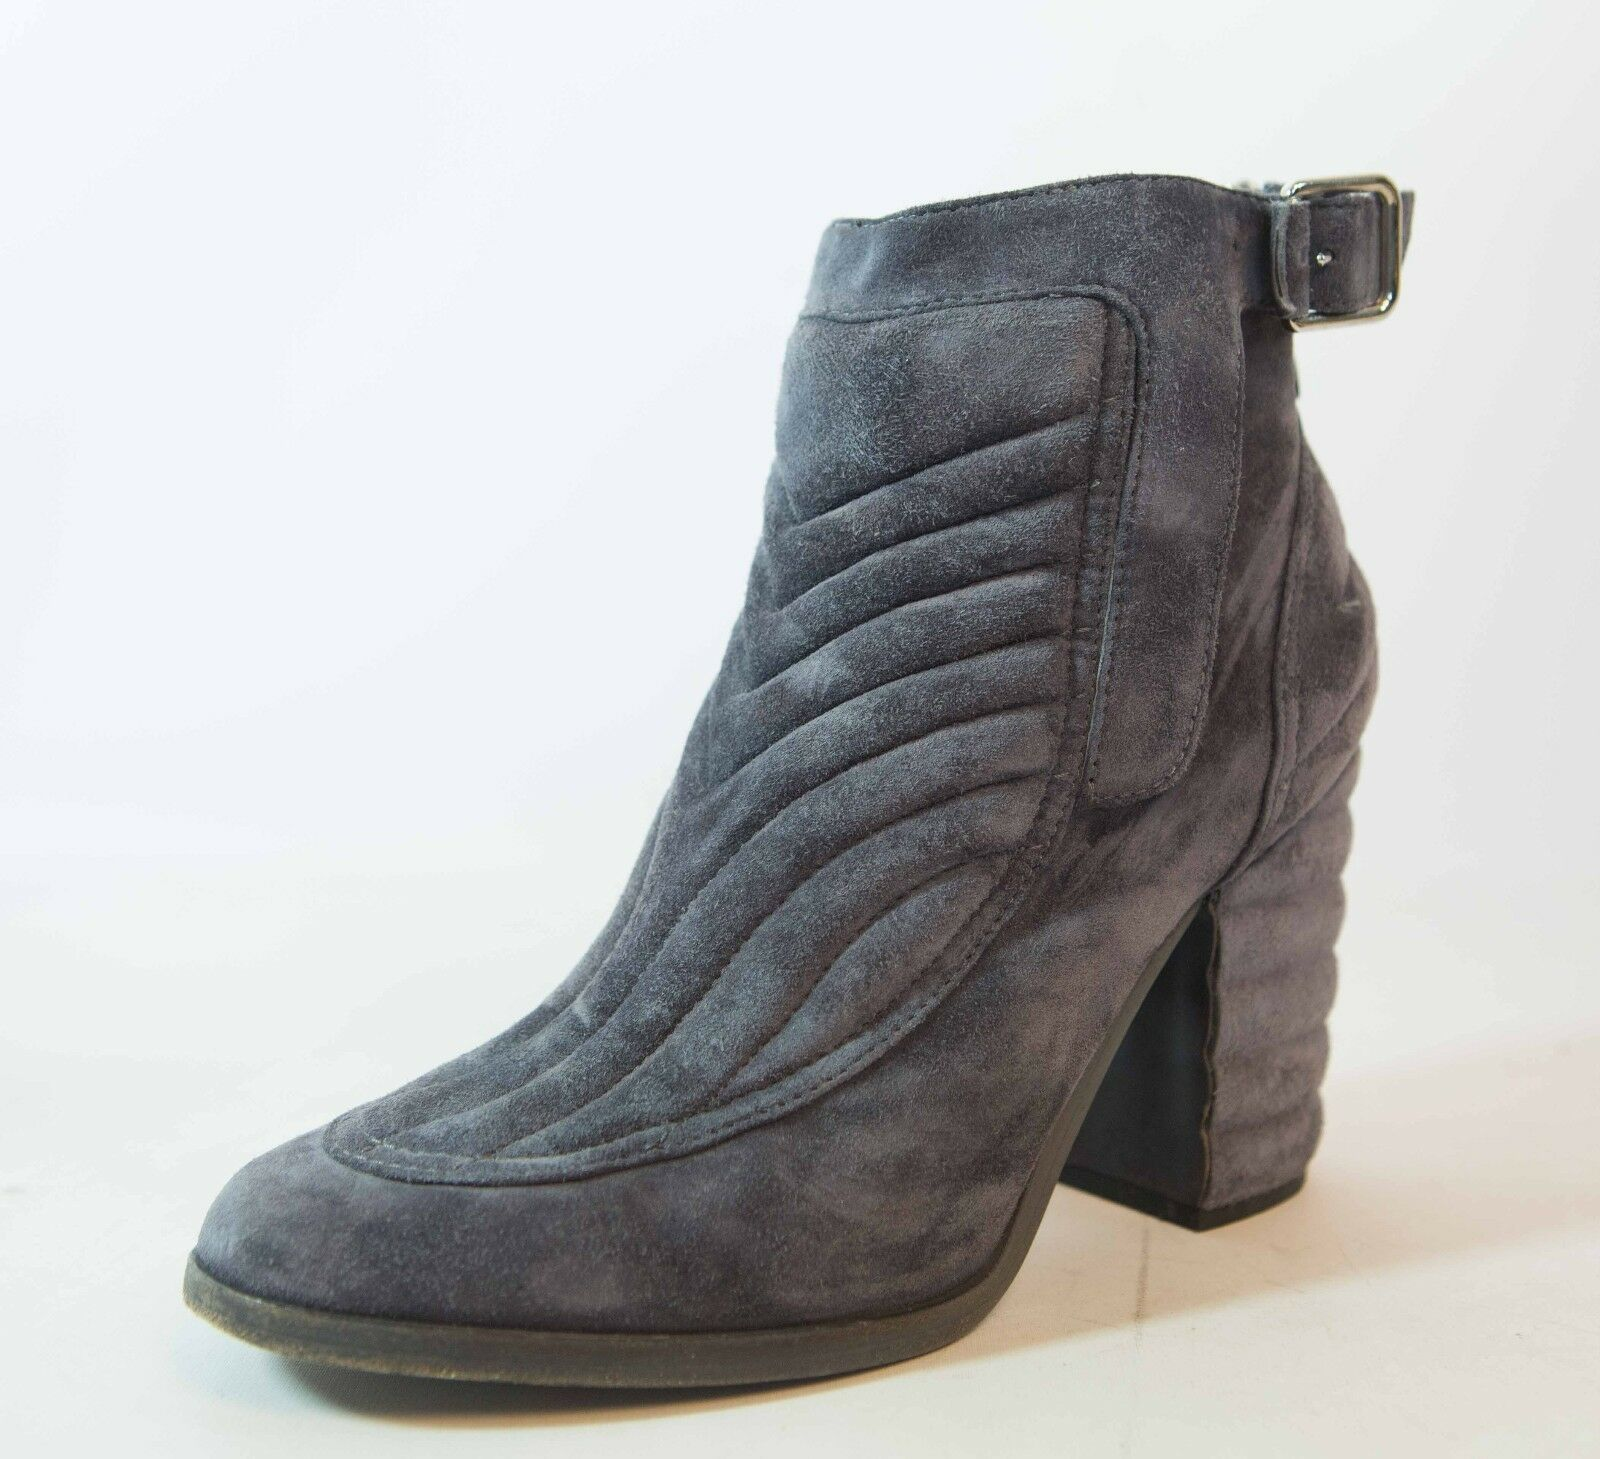 LAURENCE DACADE DACADE DACADE Barbara suede quilted boots booties grey 39.5 e1f4ed